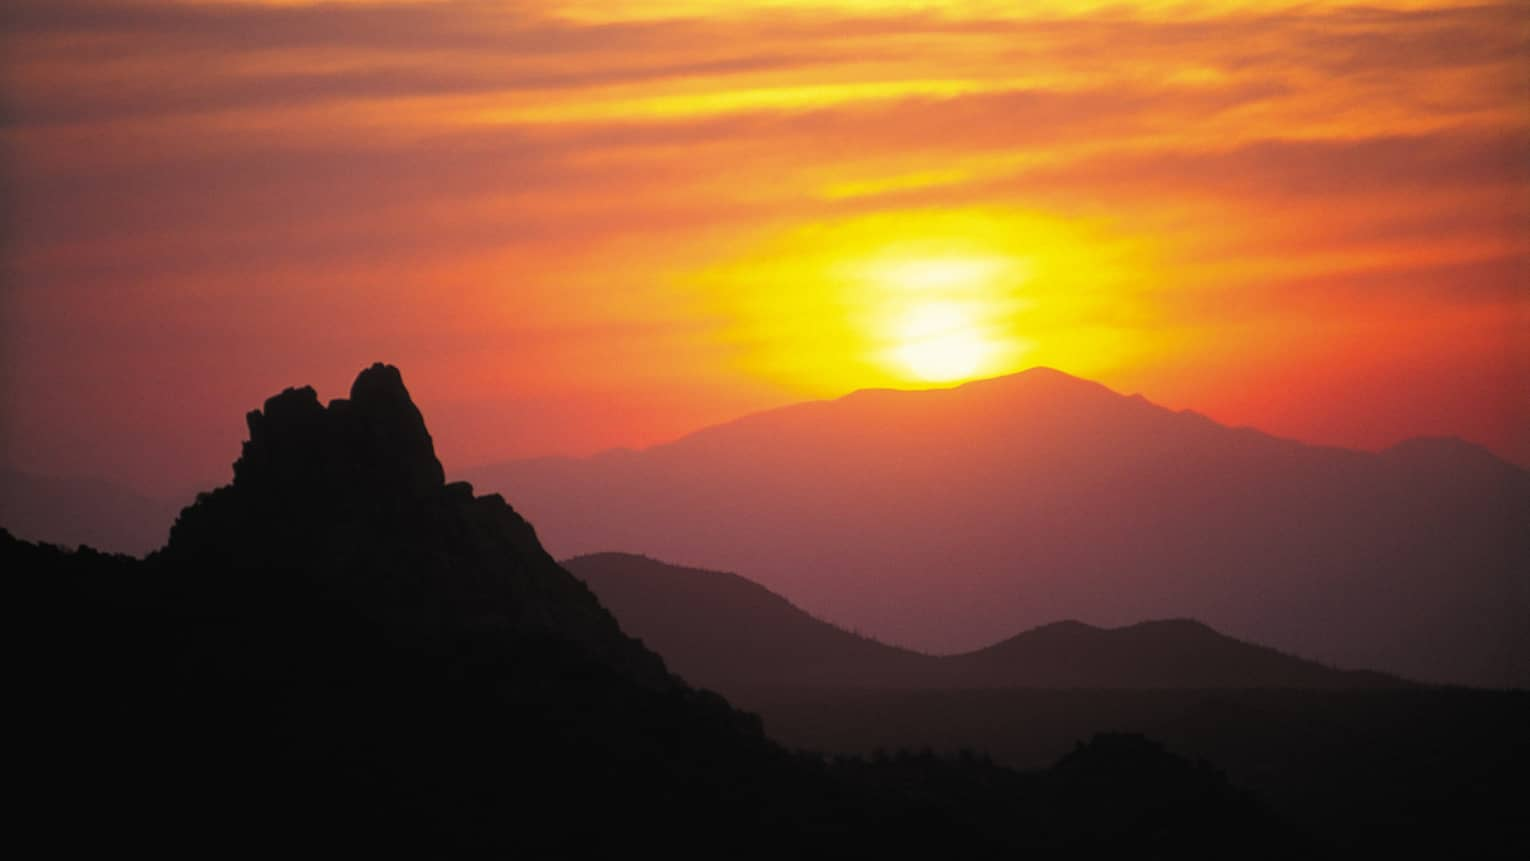 Silhouette of Pinnacle Peak mountain in front of orange sunset